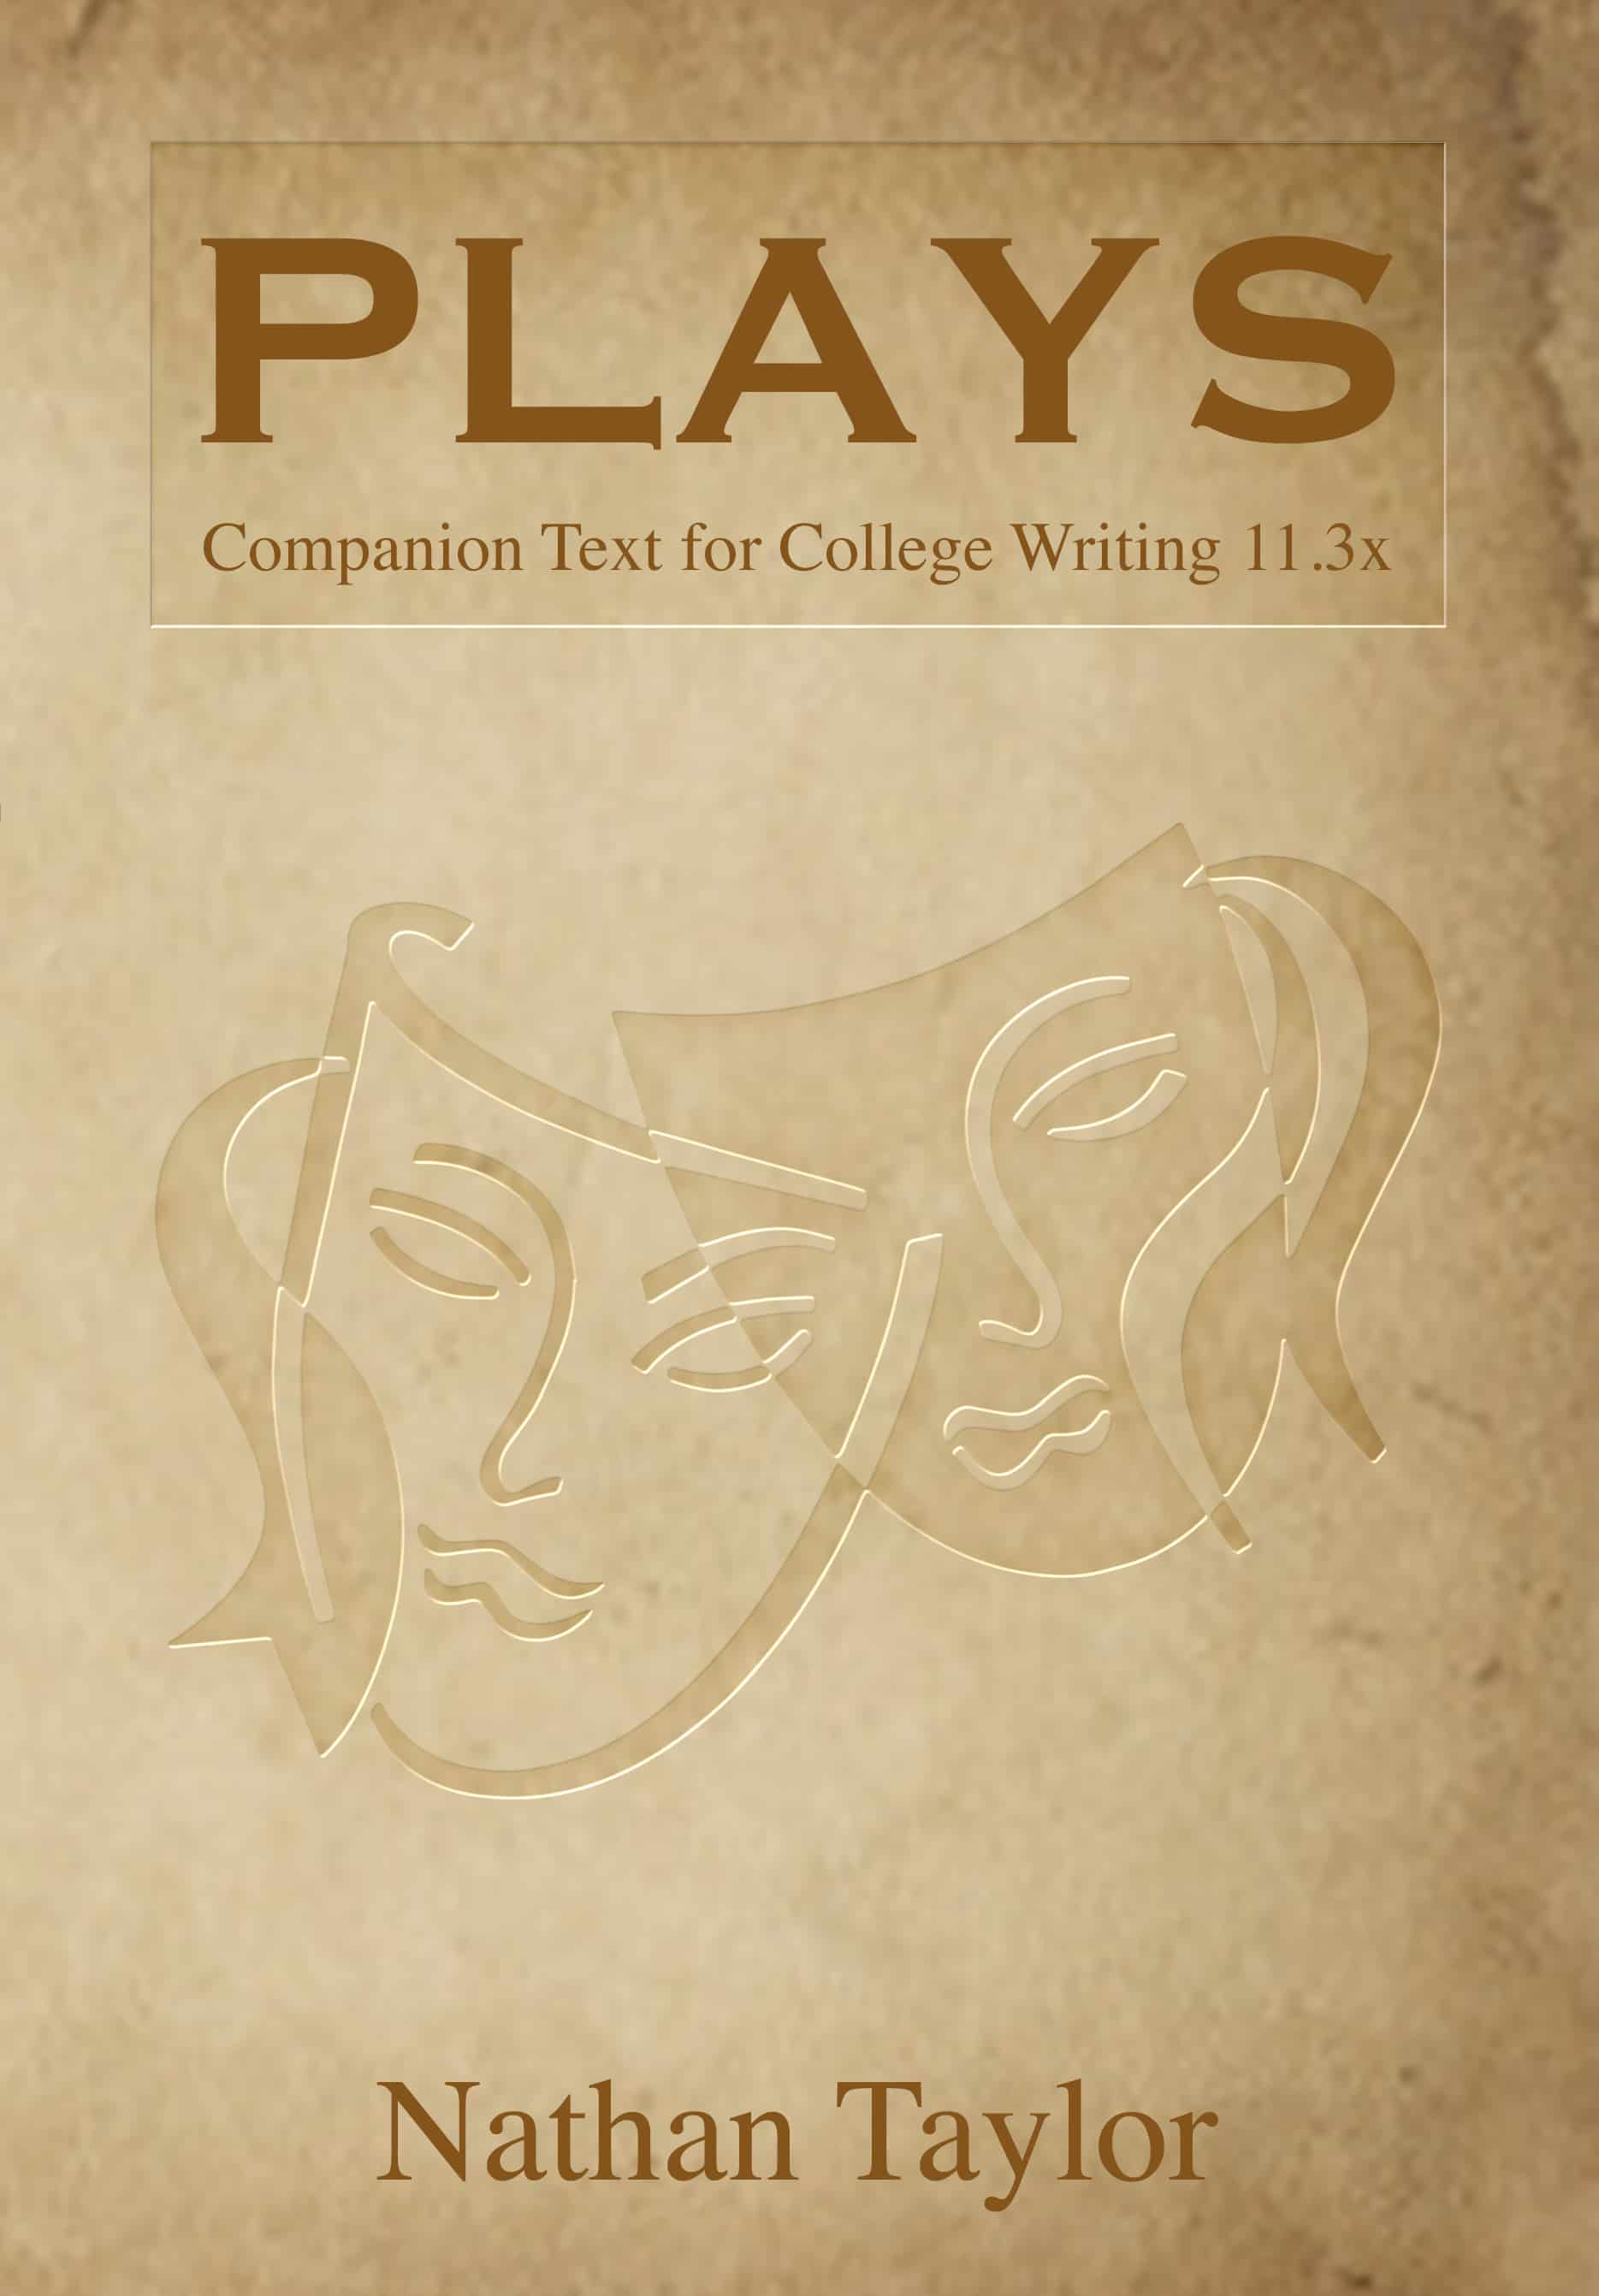 Plays-eBook-Cover